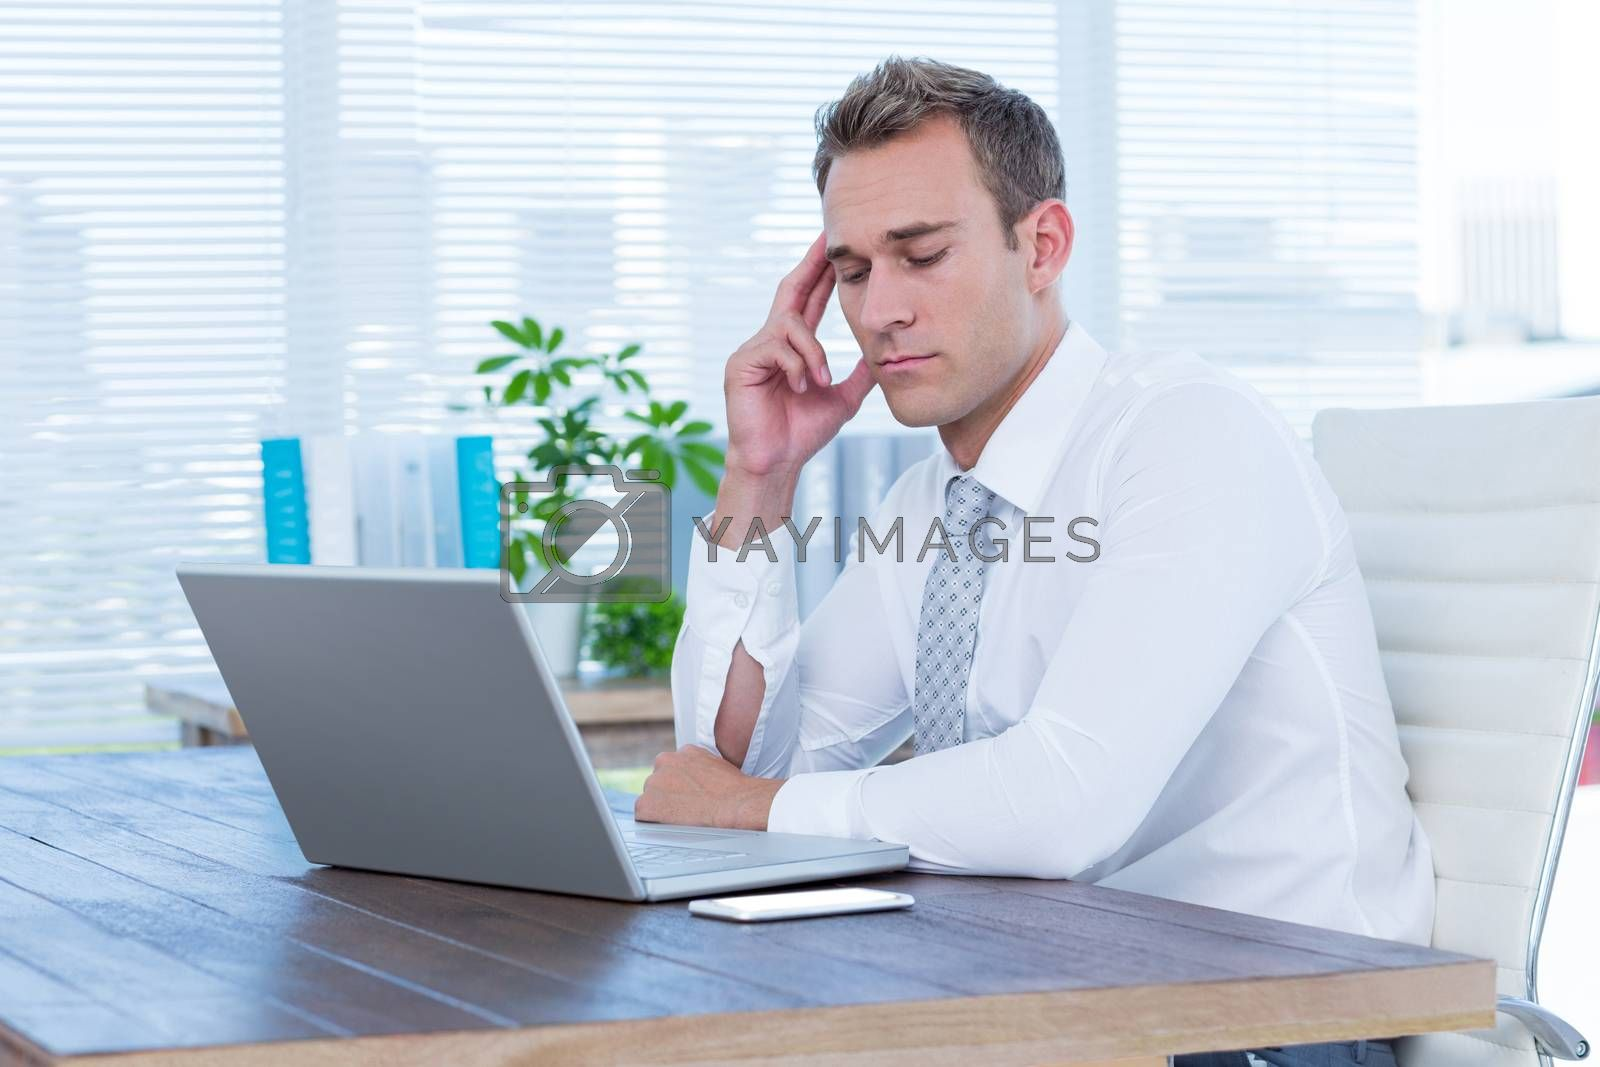 Royalty free image of Exhausted businessman drowsing on his laptop by Wavebreakmedia